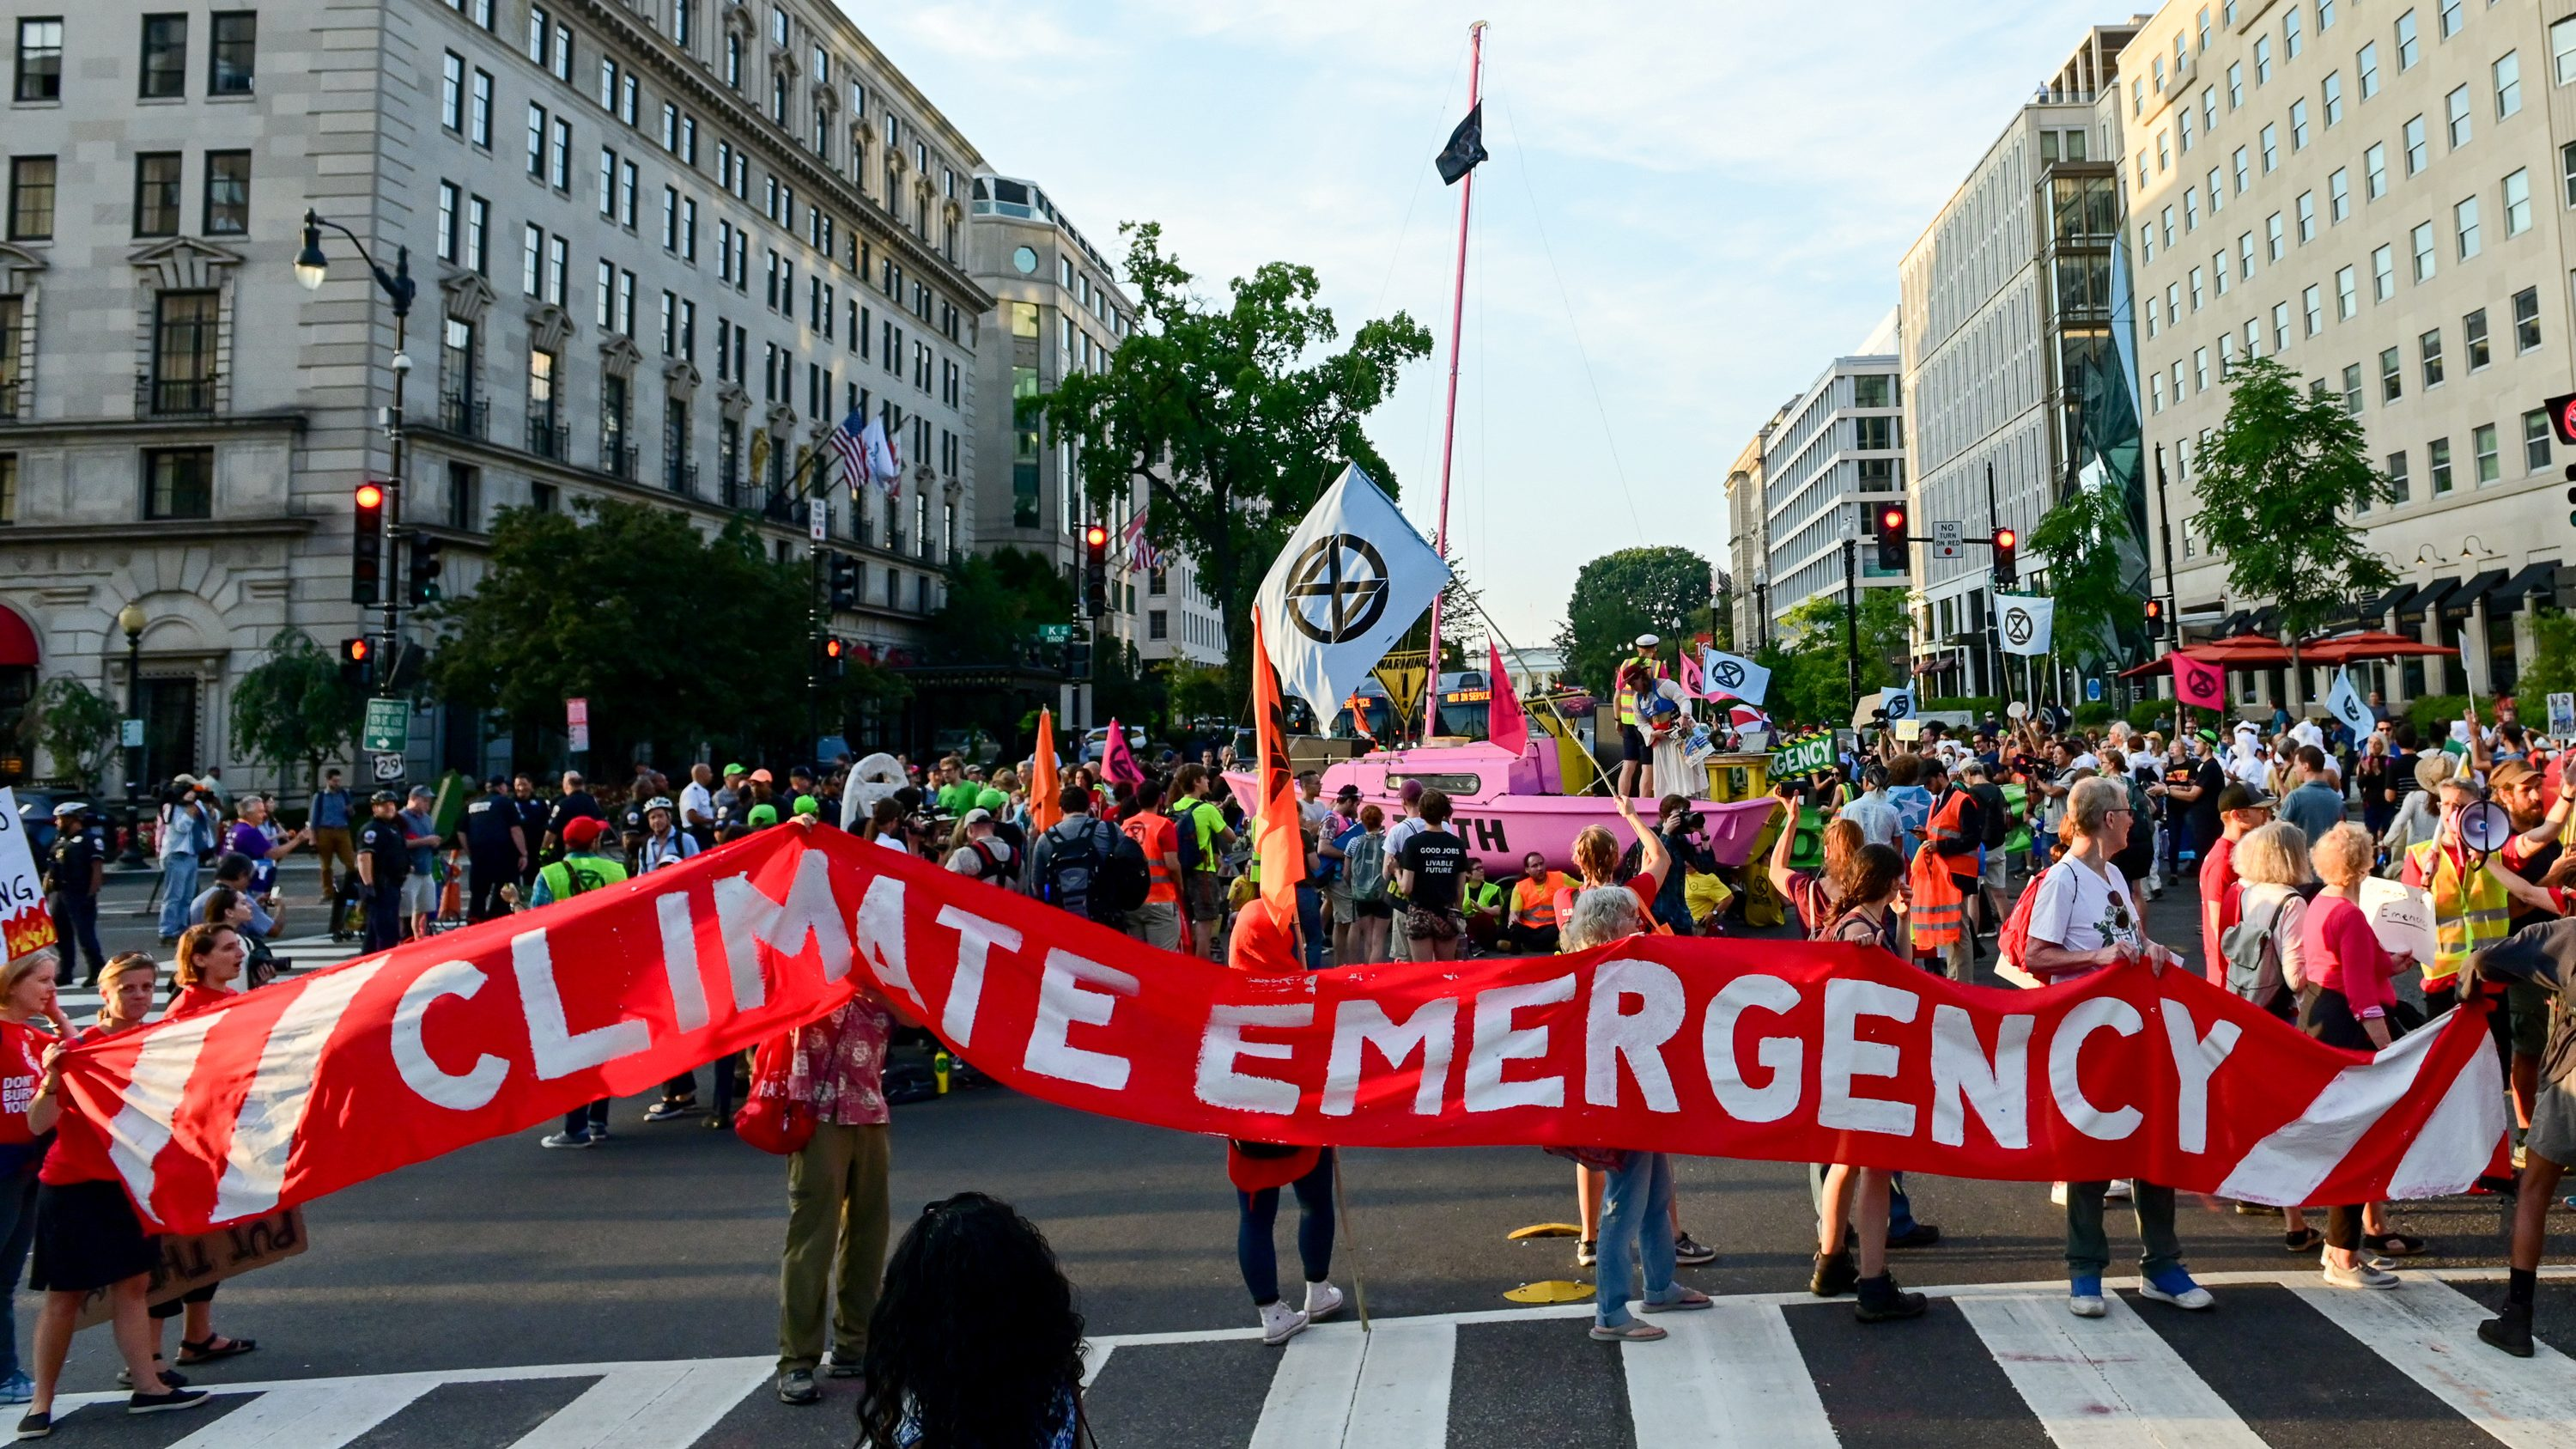 A group of protesters walk down a city street carrying a red banner that reads CLIMATE EMERGENCY